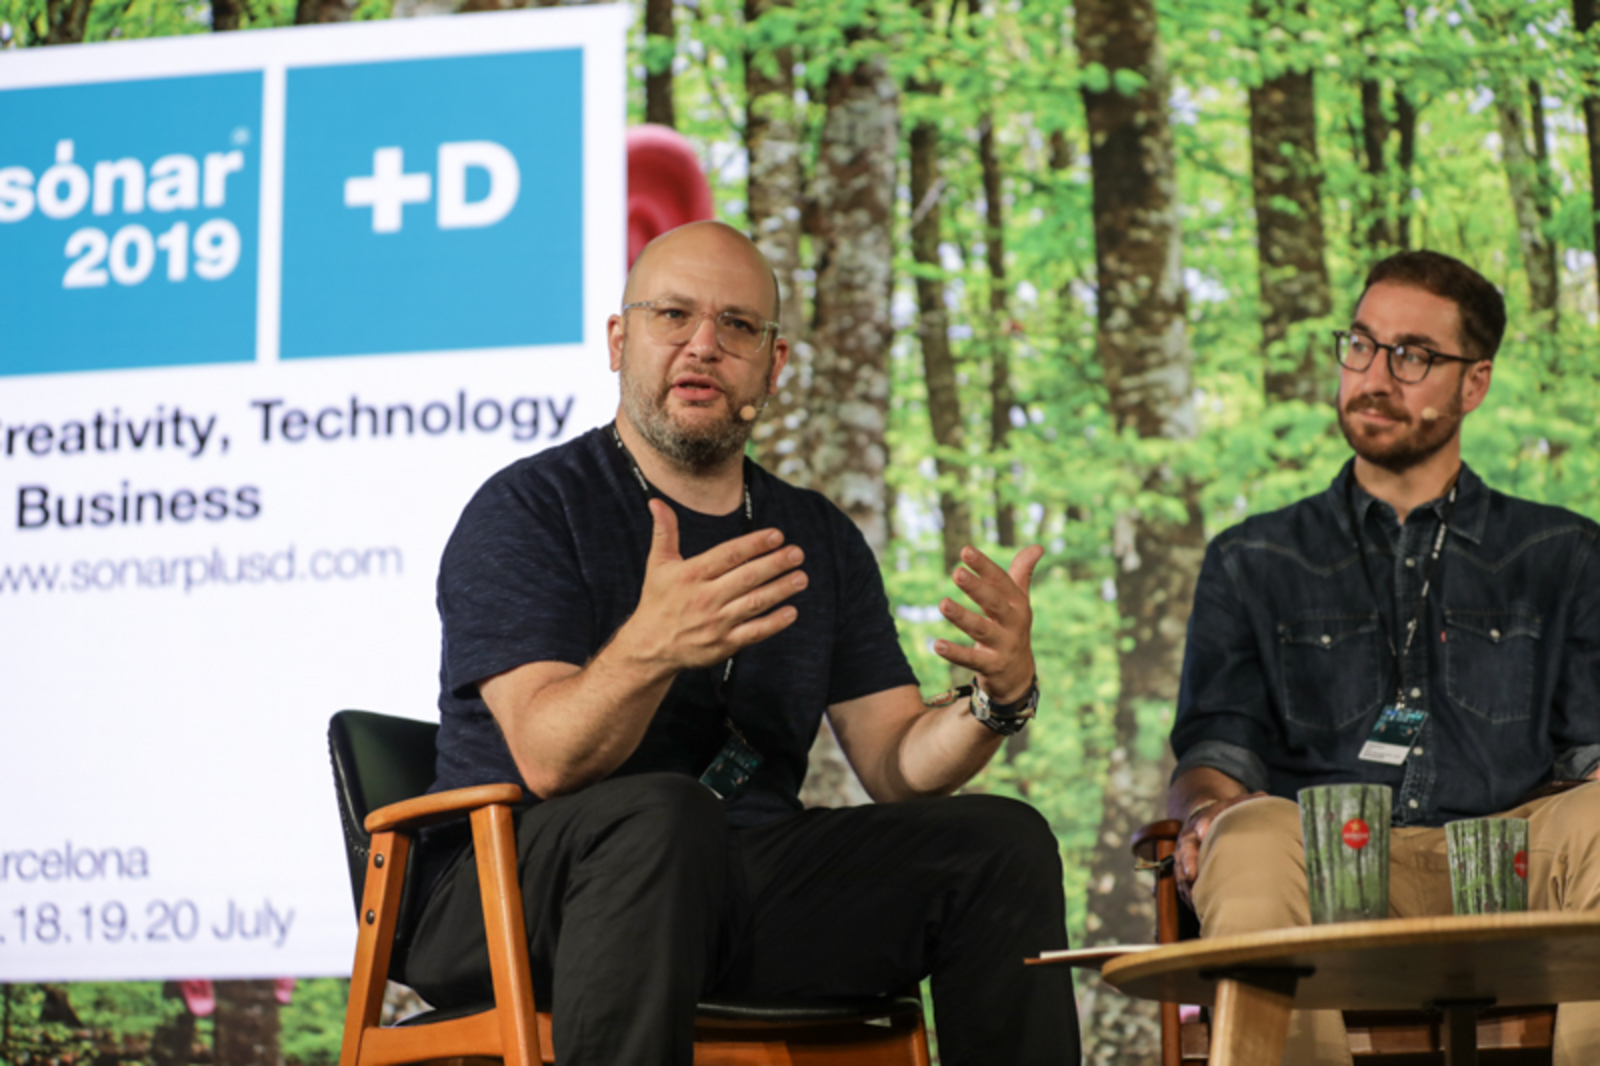 Tech Giants debate: the future of VR presented by /INSIDERS/